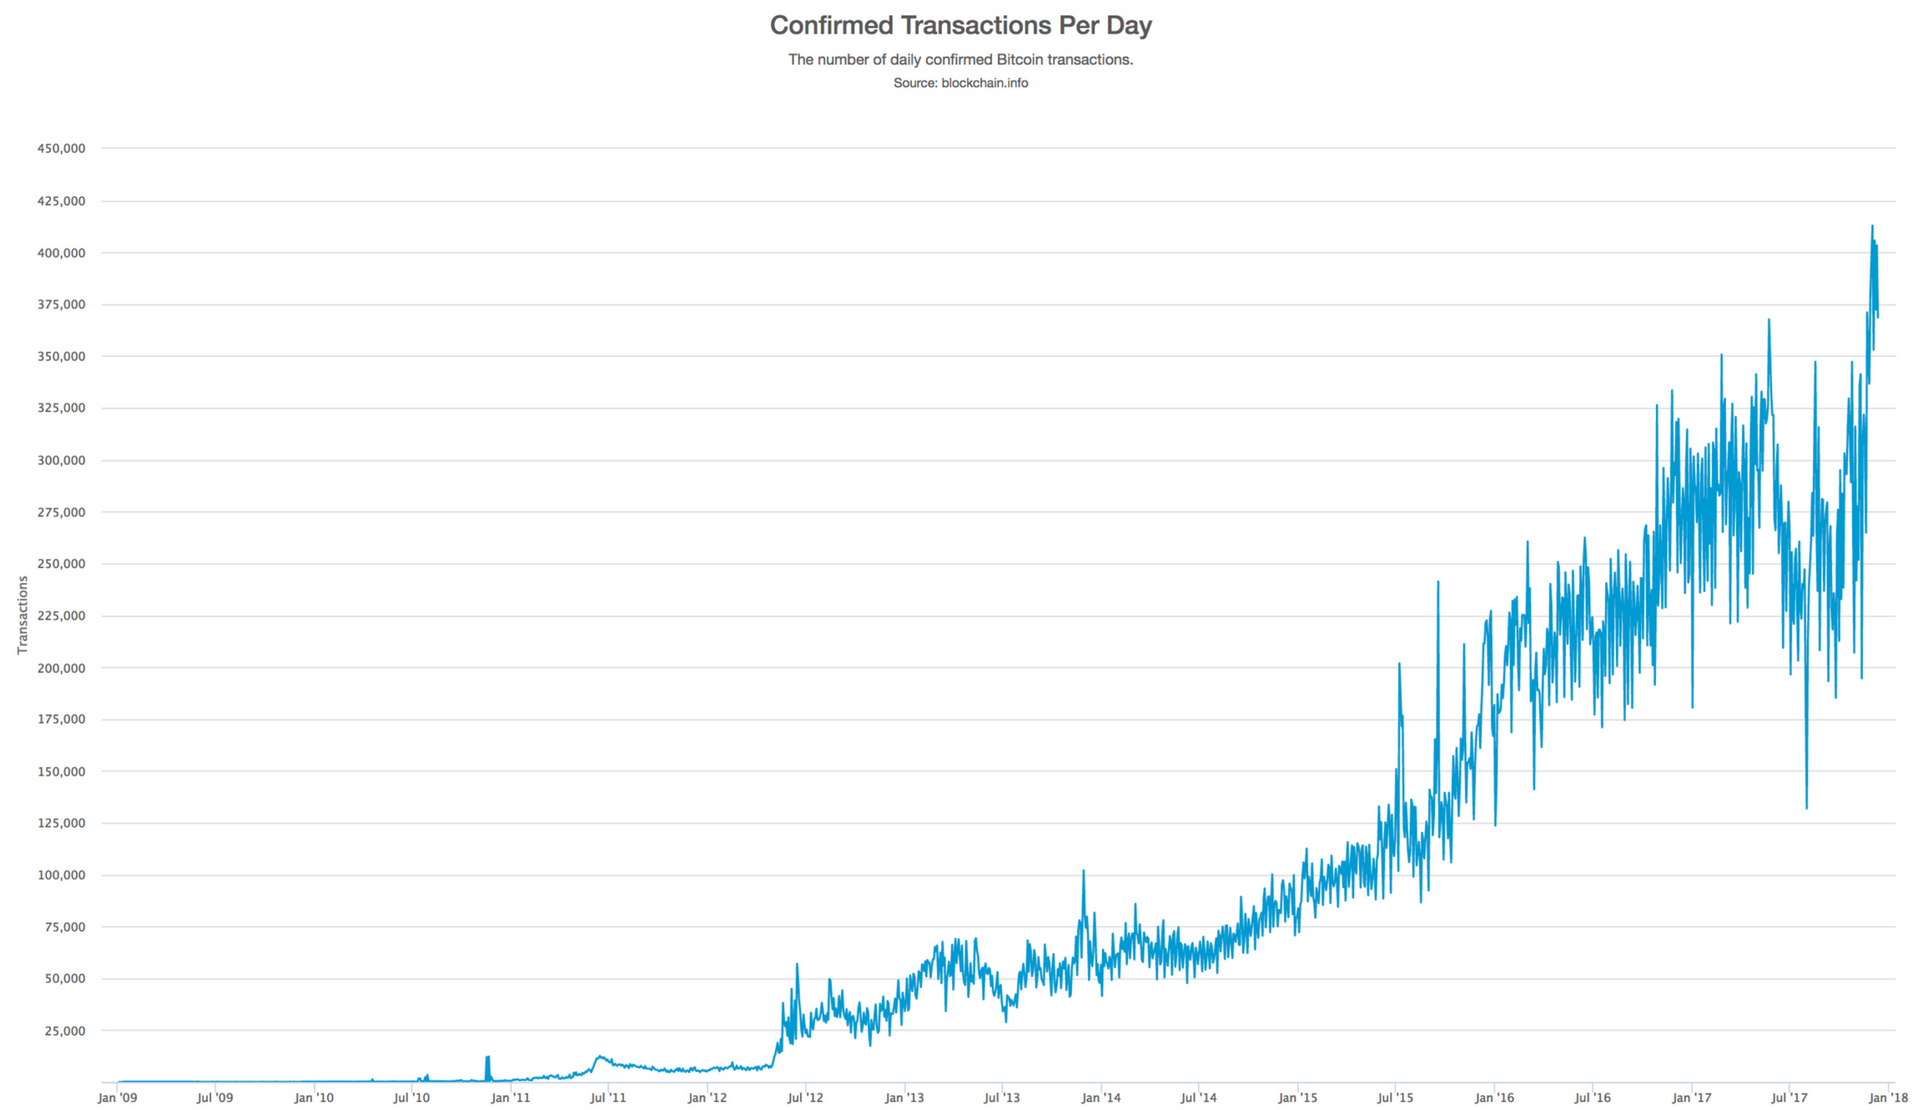 Bitcoin Transaction Volume per Day From Blockchain.info